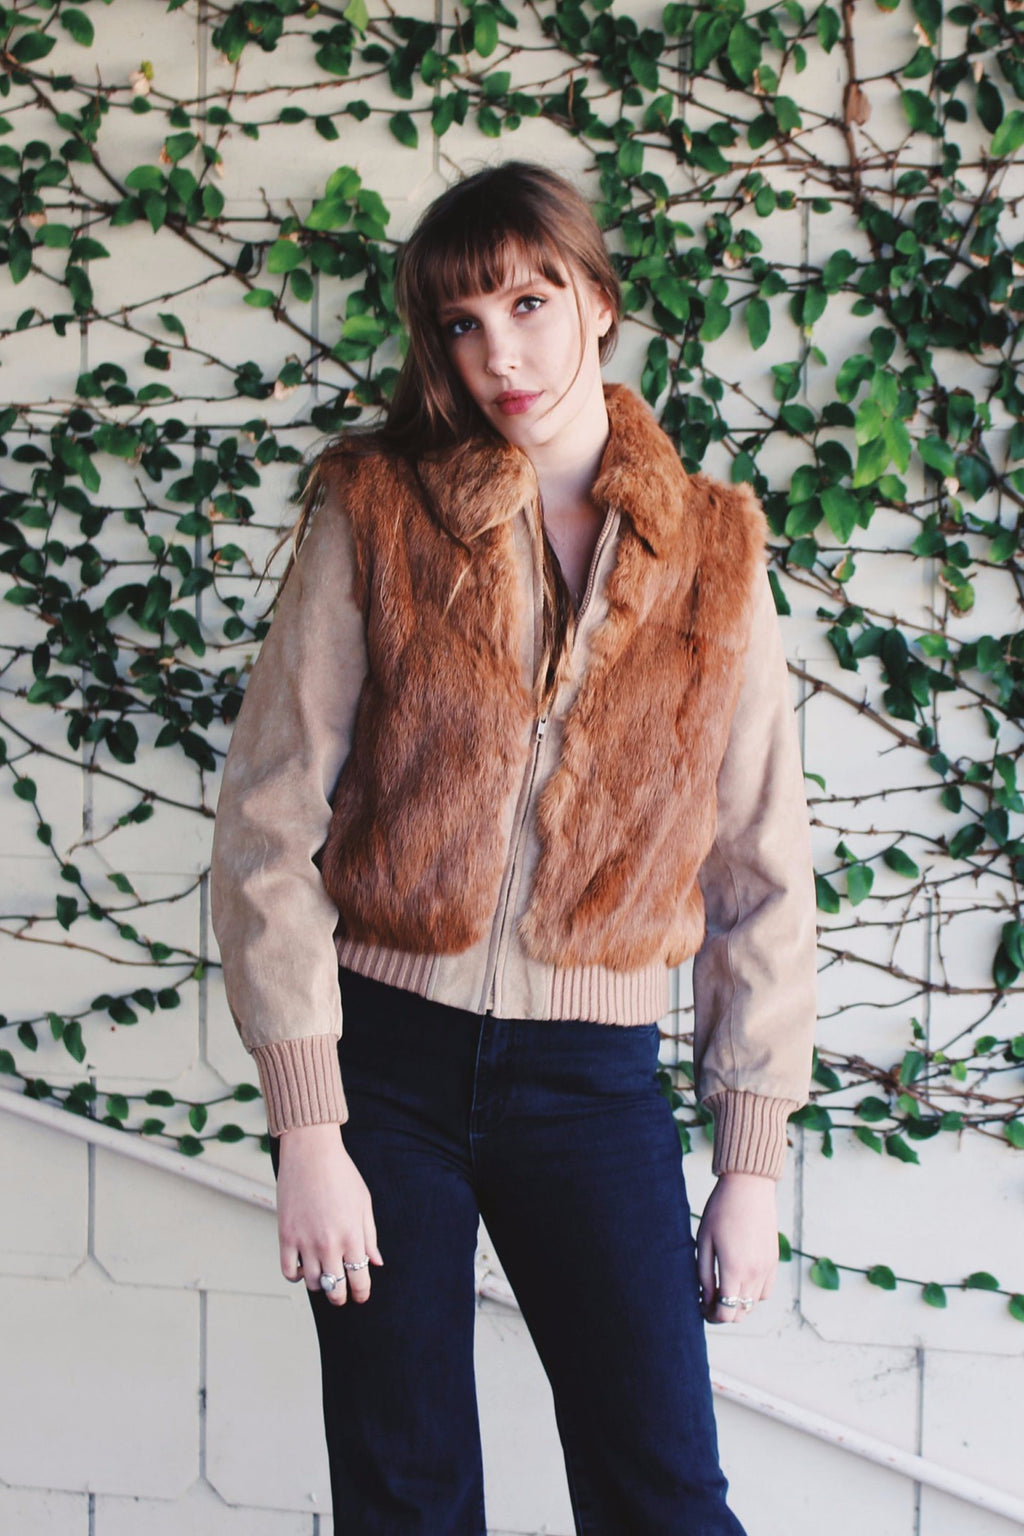 Festival Fur Coat - Bomber Jacket - Bomber Jacket For Women - Vintage Gypsy Jacket - Burning Man Fur Coat - Bohemian Fur Coat - Rabbit Fur